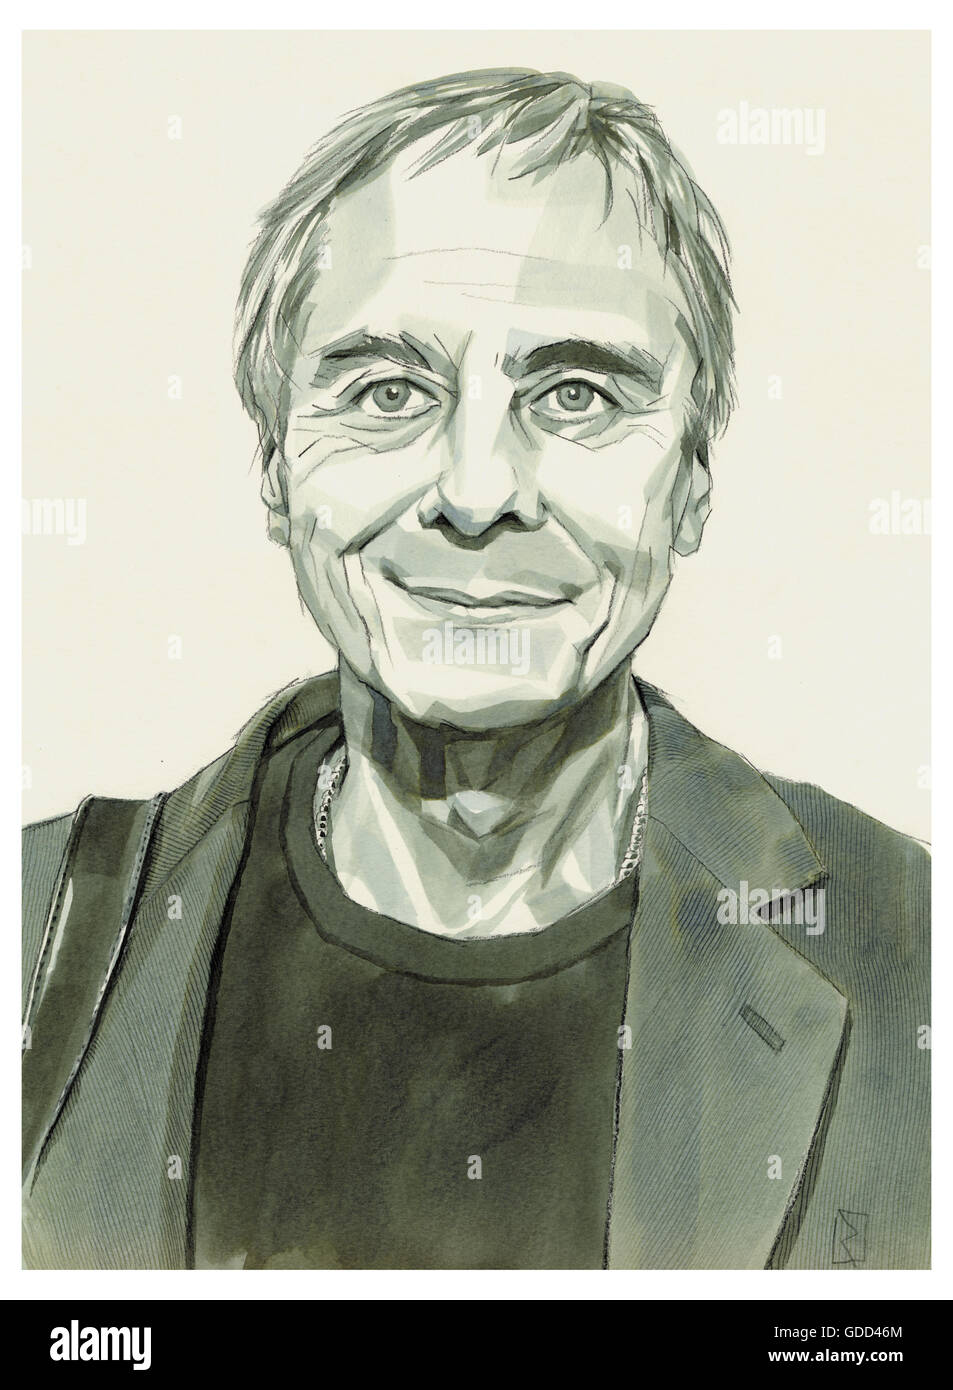 Neumeier, John, * 24.2.1942, American choreographer, portrait, monochrome drawing by Jan Rieckhoff, 16.10.2007, - Stock Image